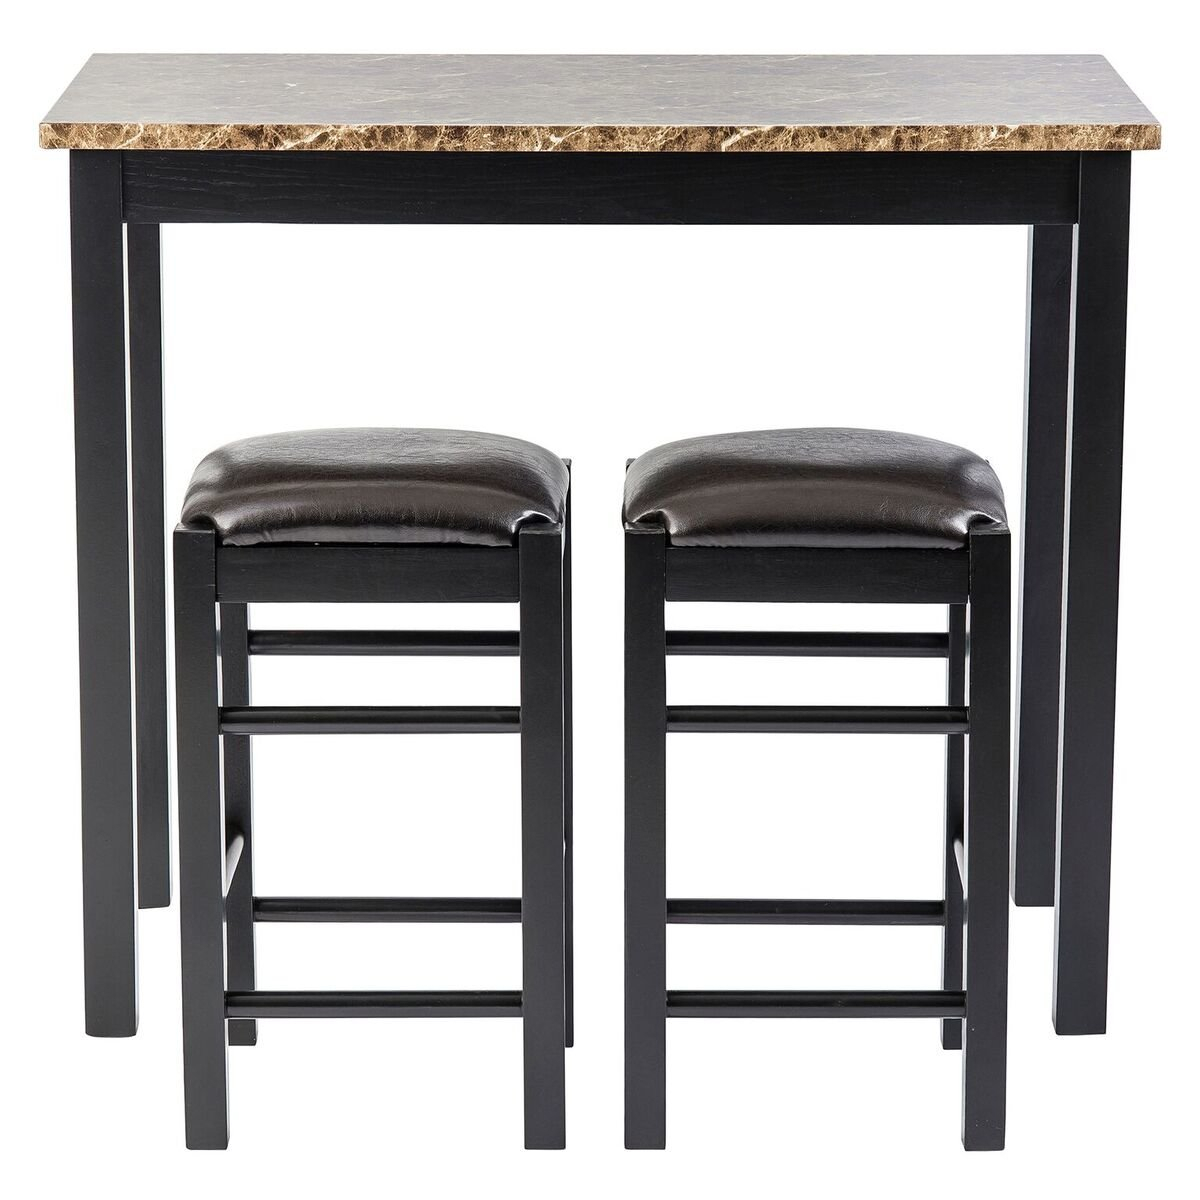 Moorehead 3 Piece Counter Height Dining Set Intended For Most Current Tappahannock 3 Piece Counter Height Dining Sets (Image 14 of 20)